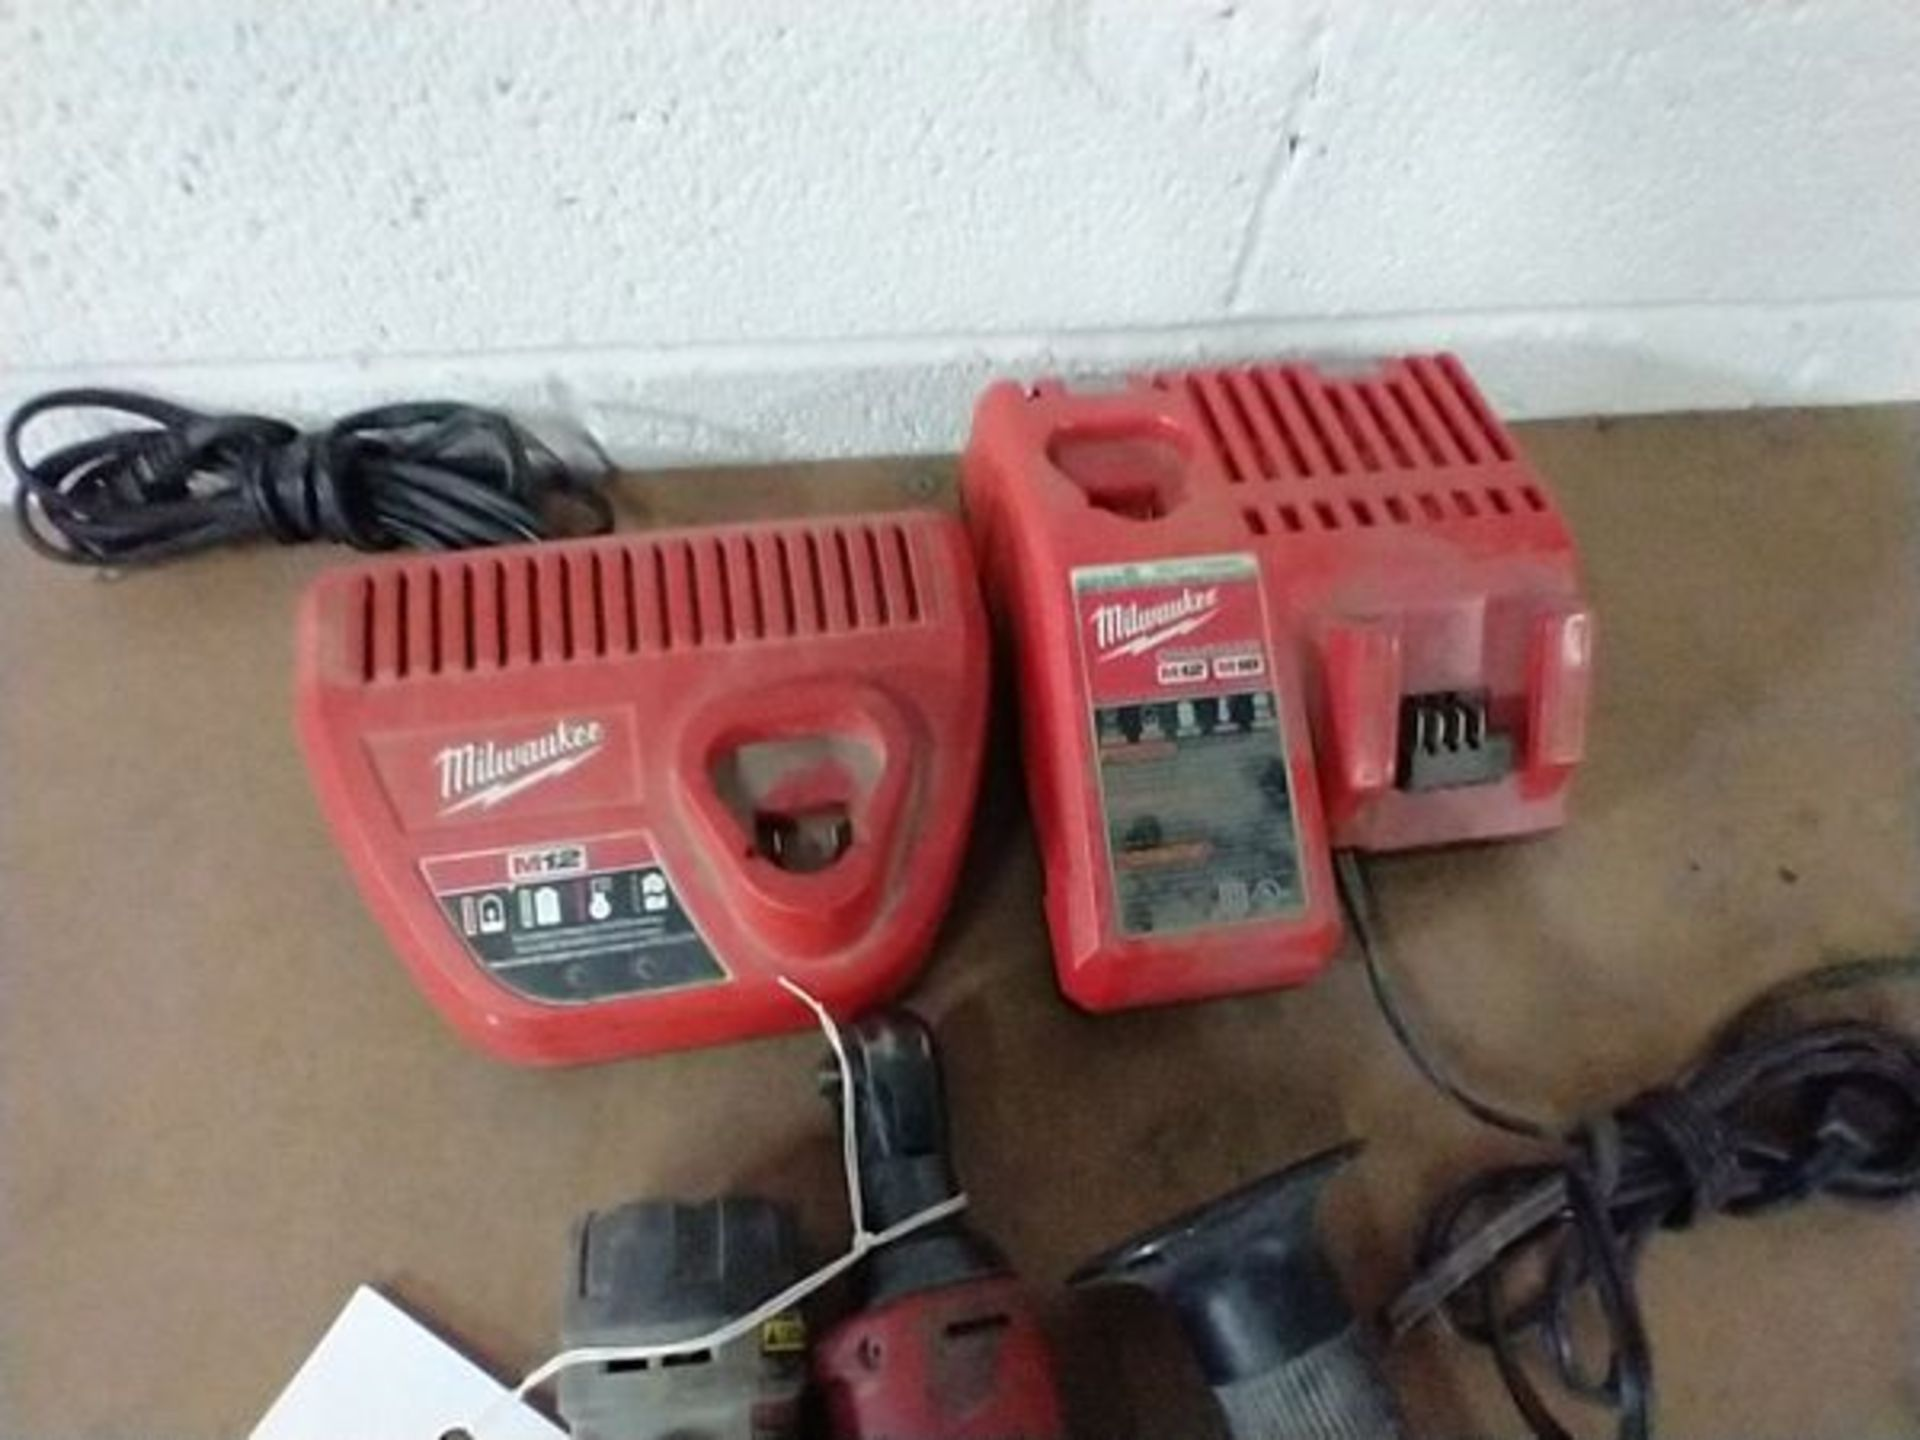 LOT OF MILWAUKEE TOOLS - NO BATTERIES - Image 3 of 3